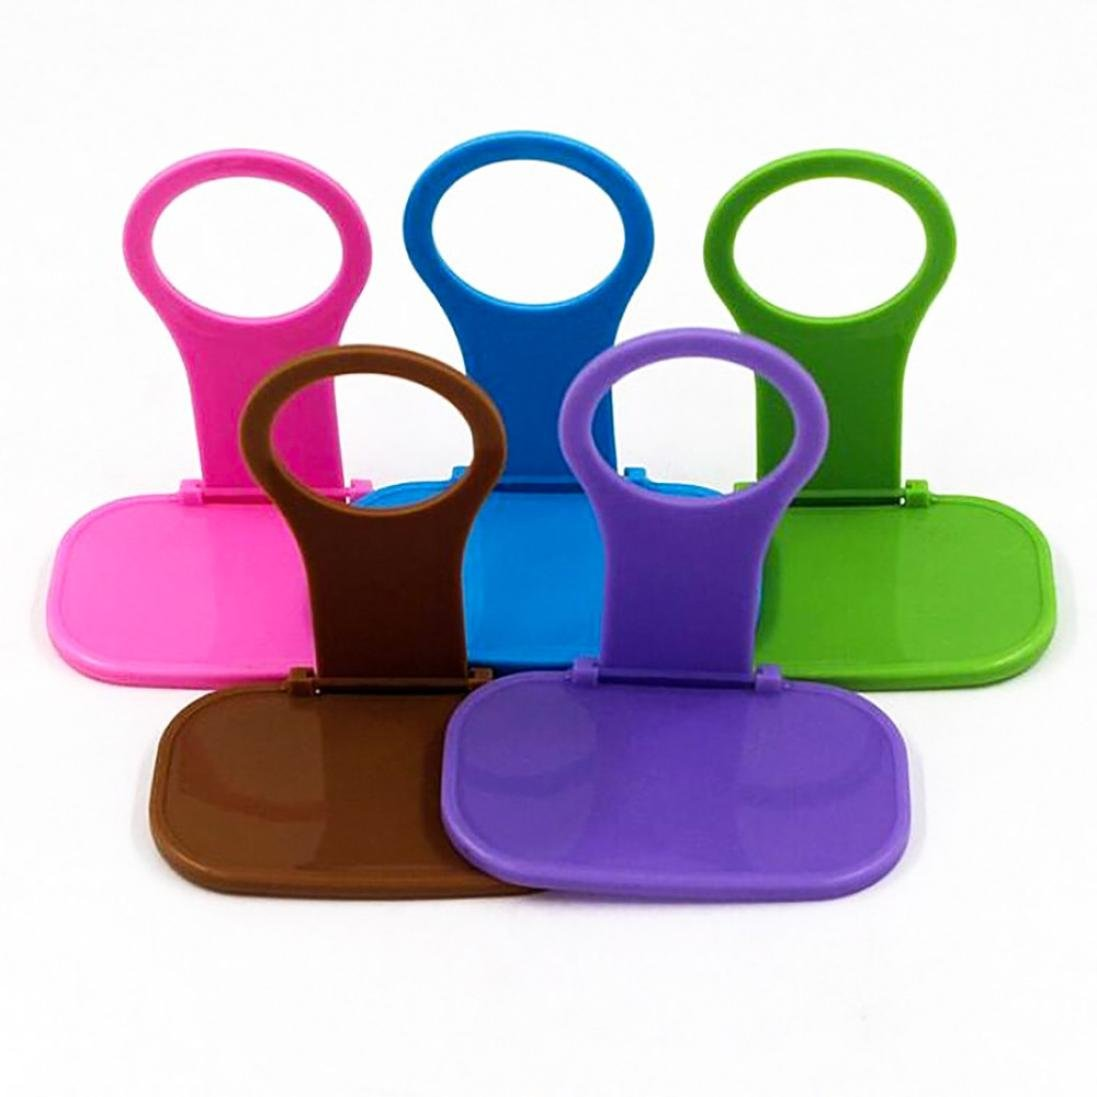 Baomabao ☎2 Foldable Plastic Phone Charger Brackets☎ Cell Phone Wall Charger Hanger Cradle Universal